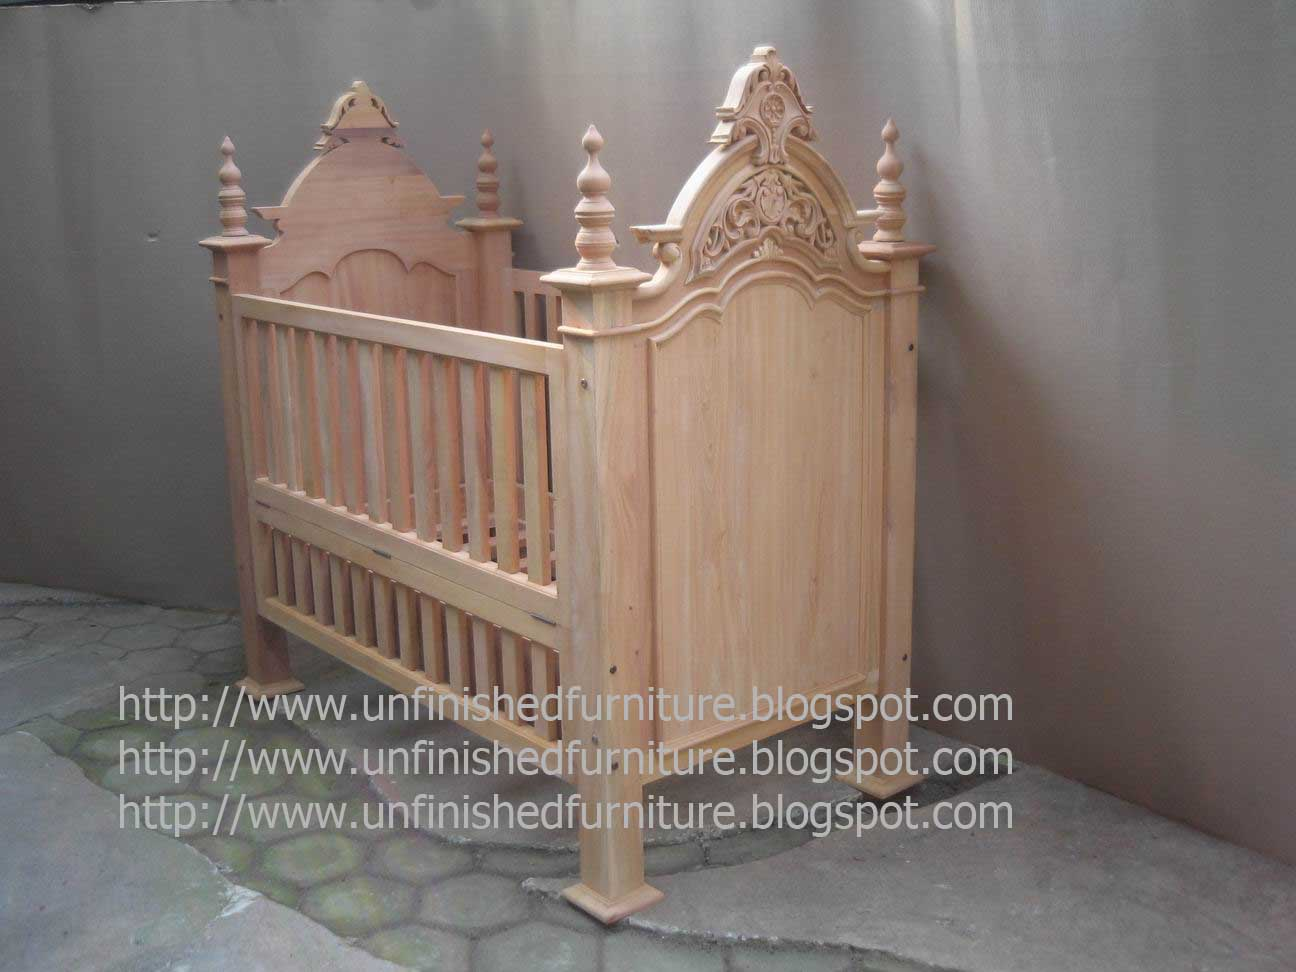 Unfinished Mahogany Furniture Unfinished Classic Furniture Victoria Baby Mahogany Bed Indonesia Classic Reproduction Furniture